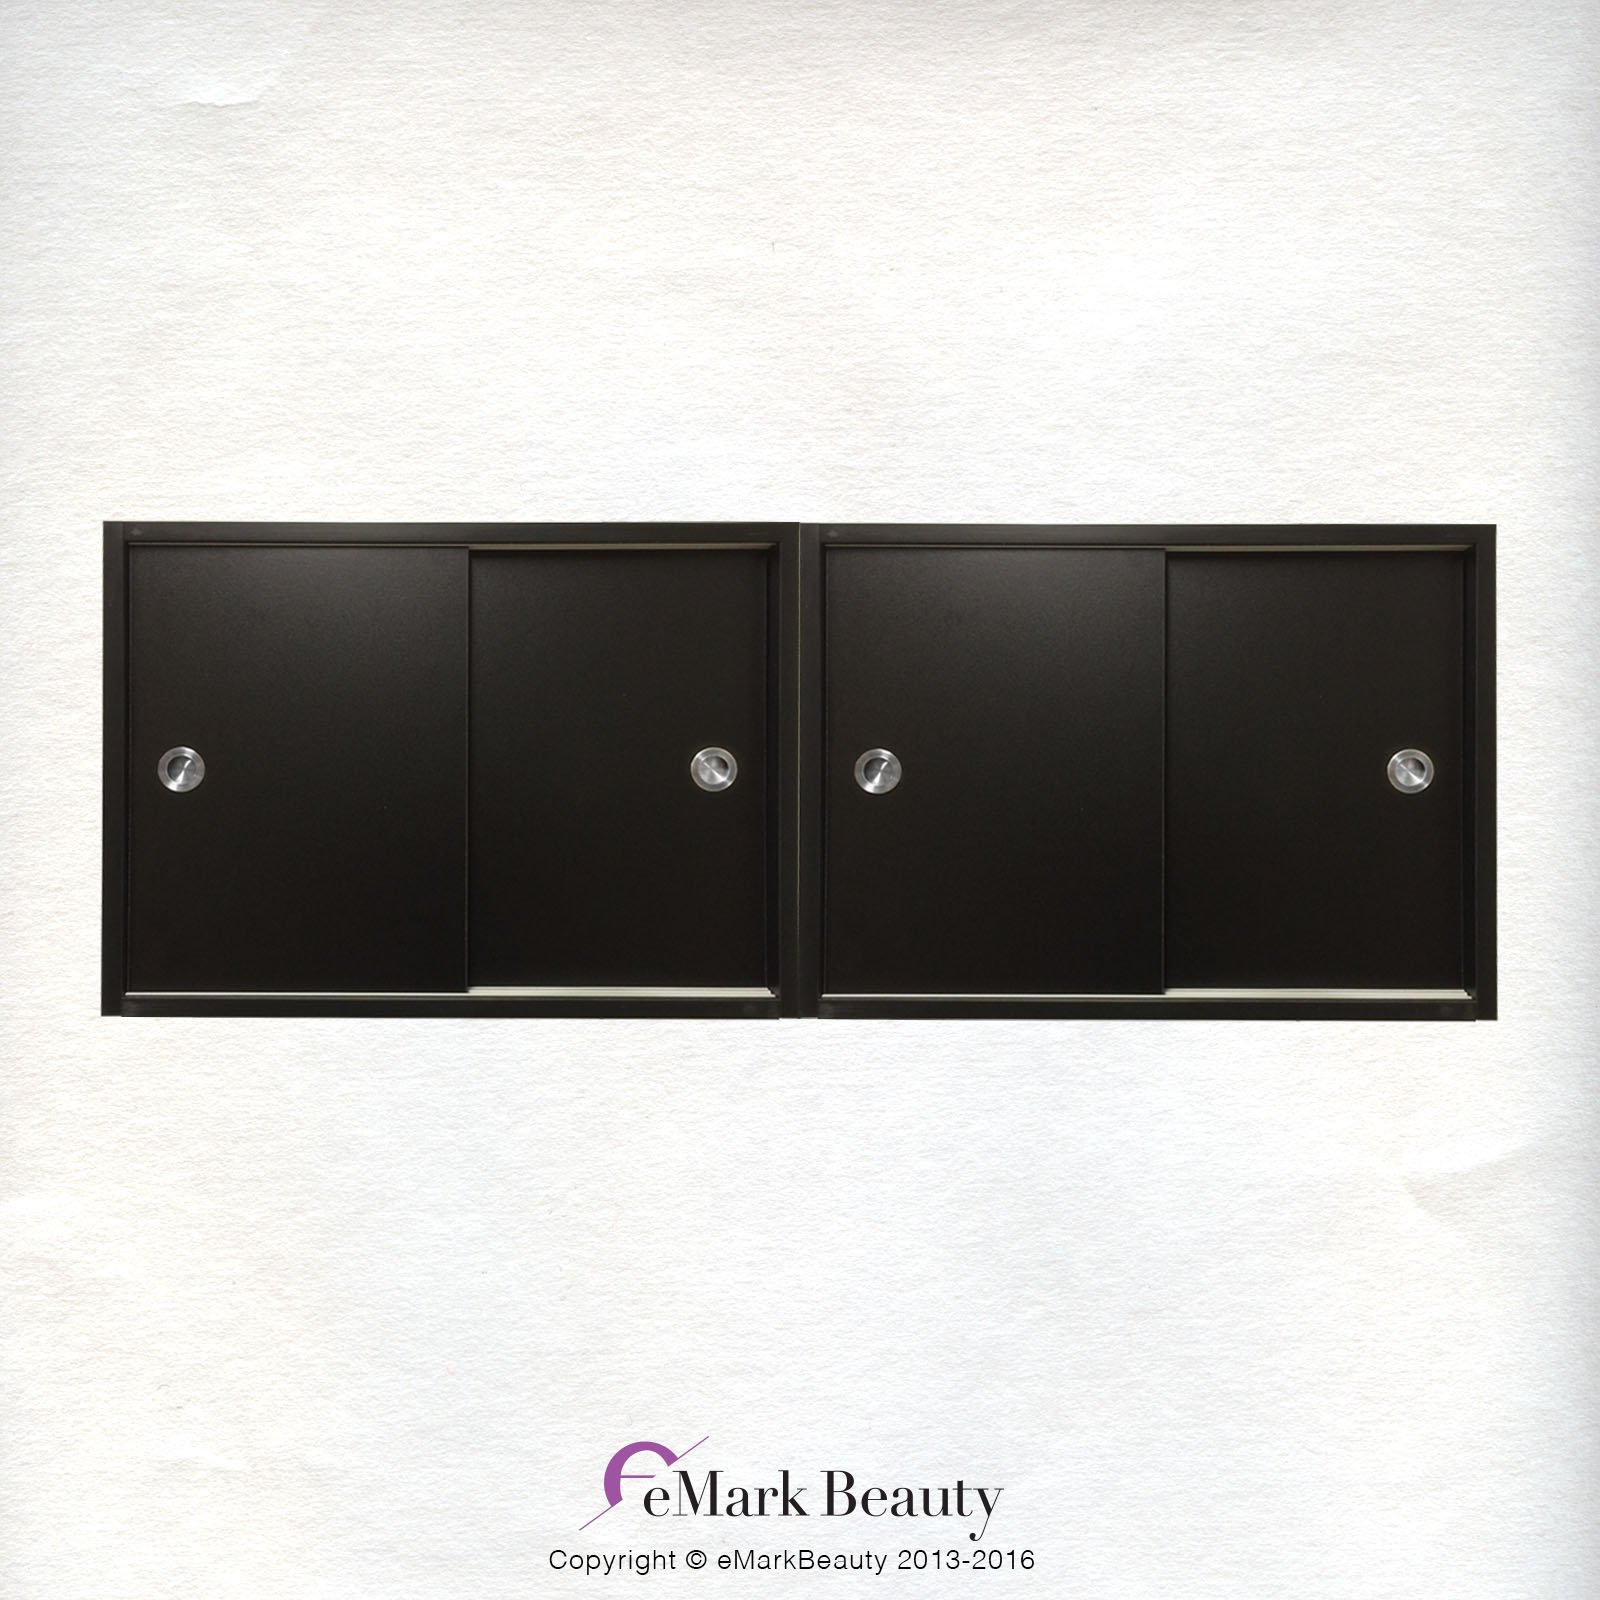 Beauty Salon DOUBLE Upper Cabinets Towel Cabinets Storage for Shampoo Bowl Station TLC-TC2TWO by eMark Beauty